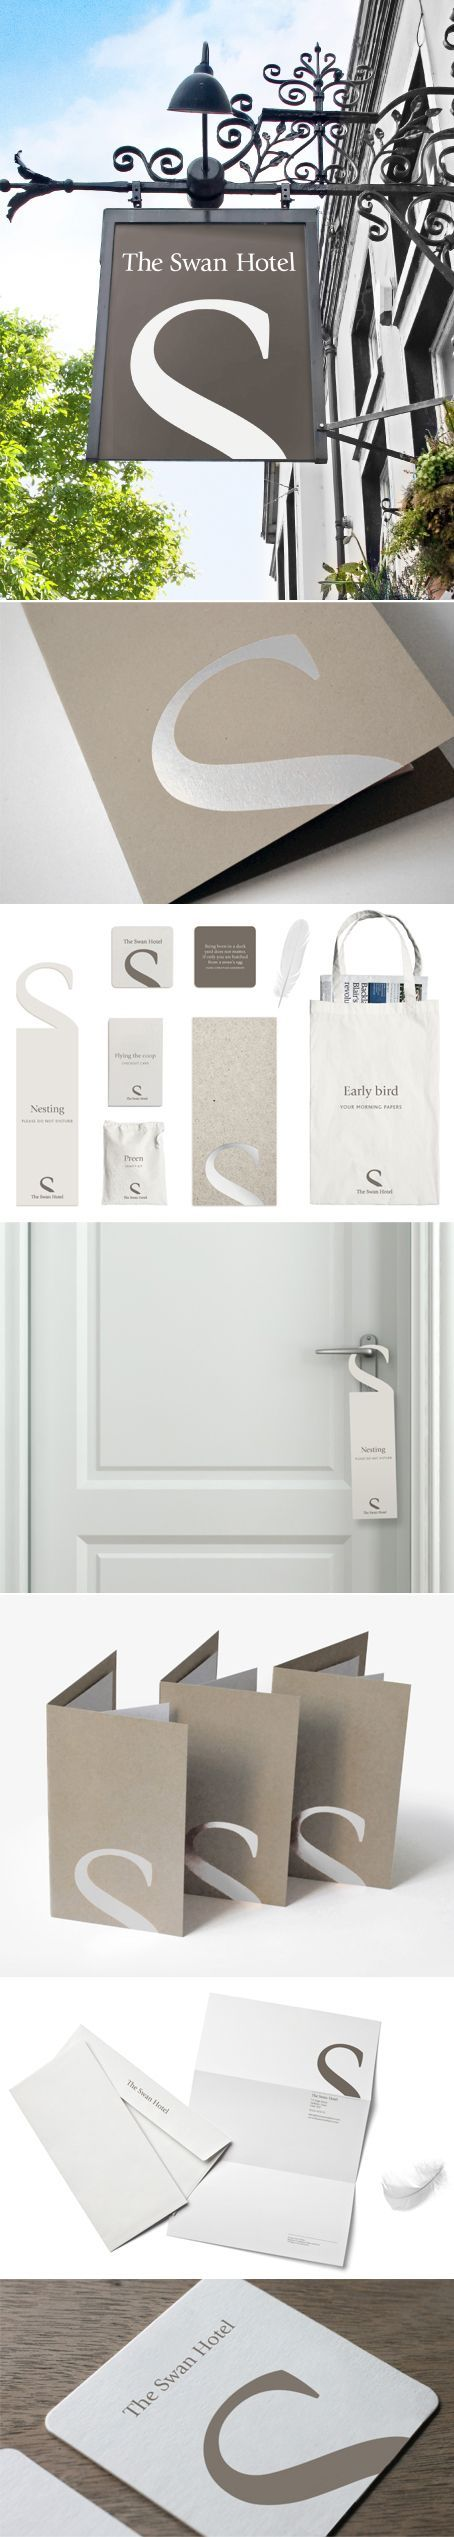 The Swan Hotel branding shows that sometimes simple is best! Elegant, classy and timeless. The colors are well chosen too.